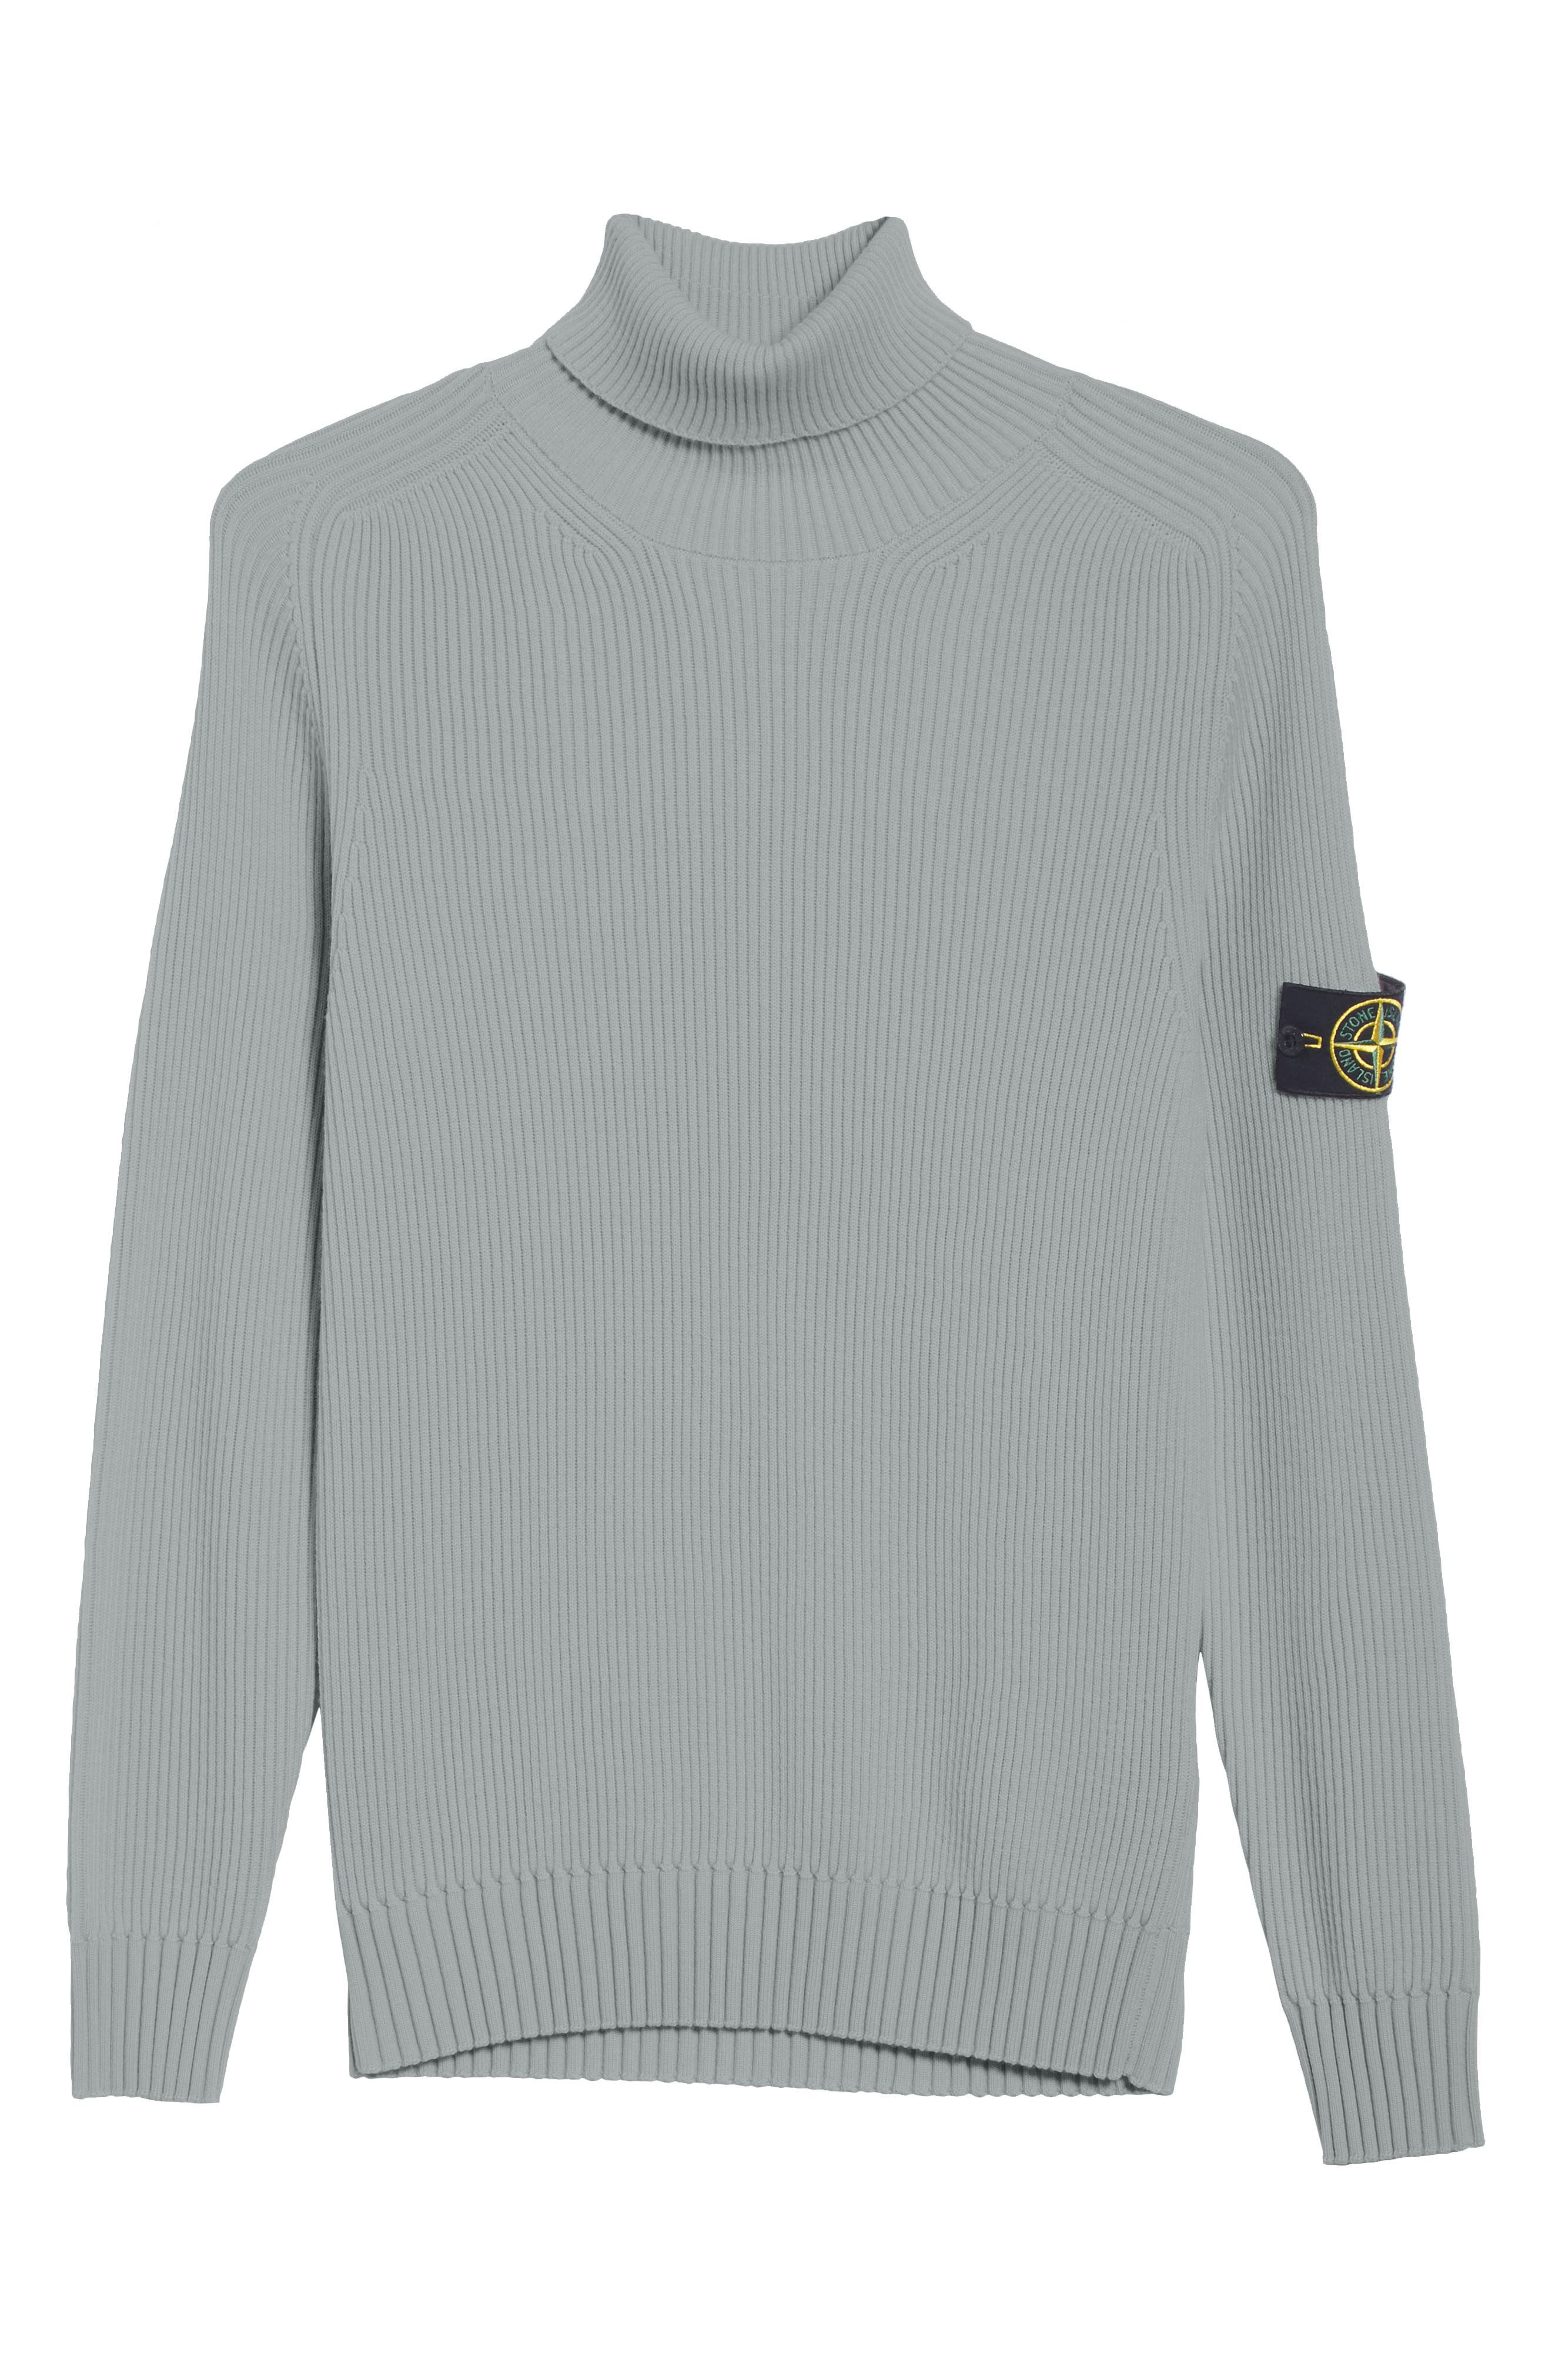 Ribbed Wool Turtleneck Sweater,                             Alternate thumbnail 6, color,                             GREY